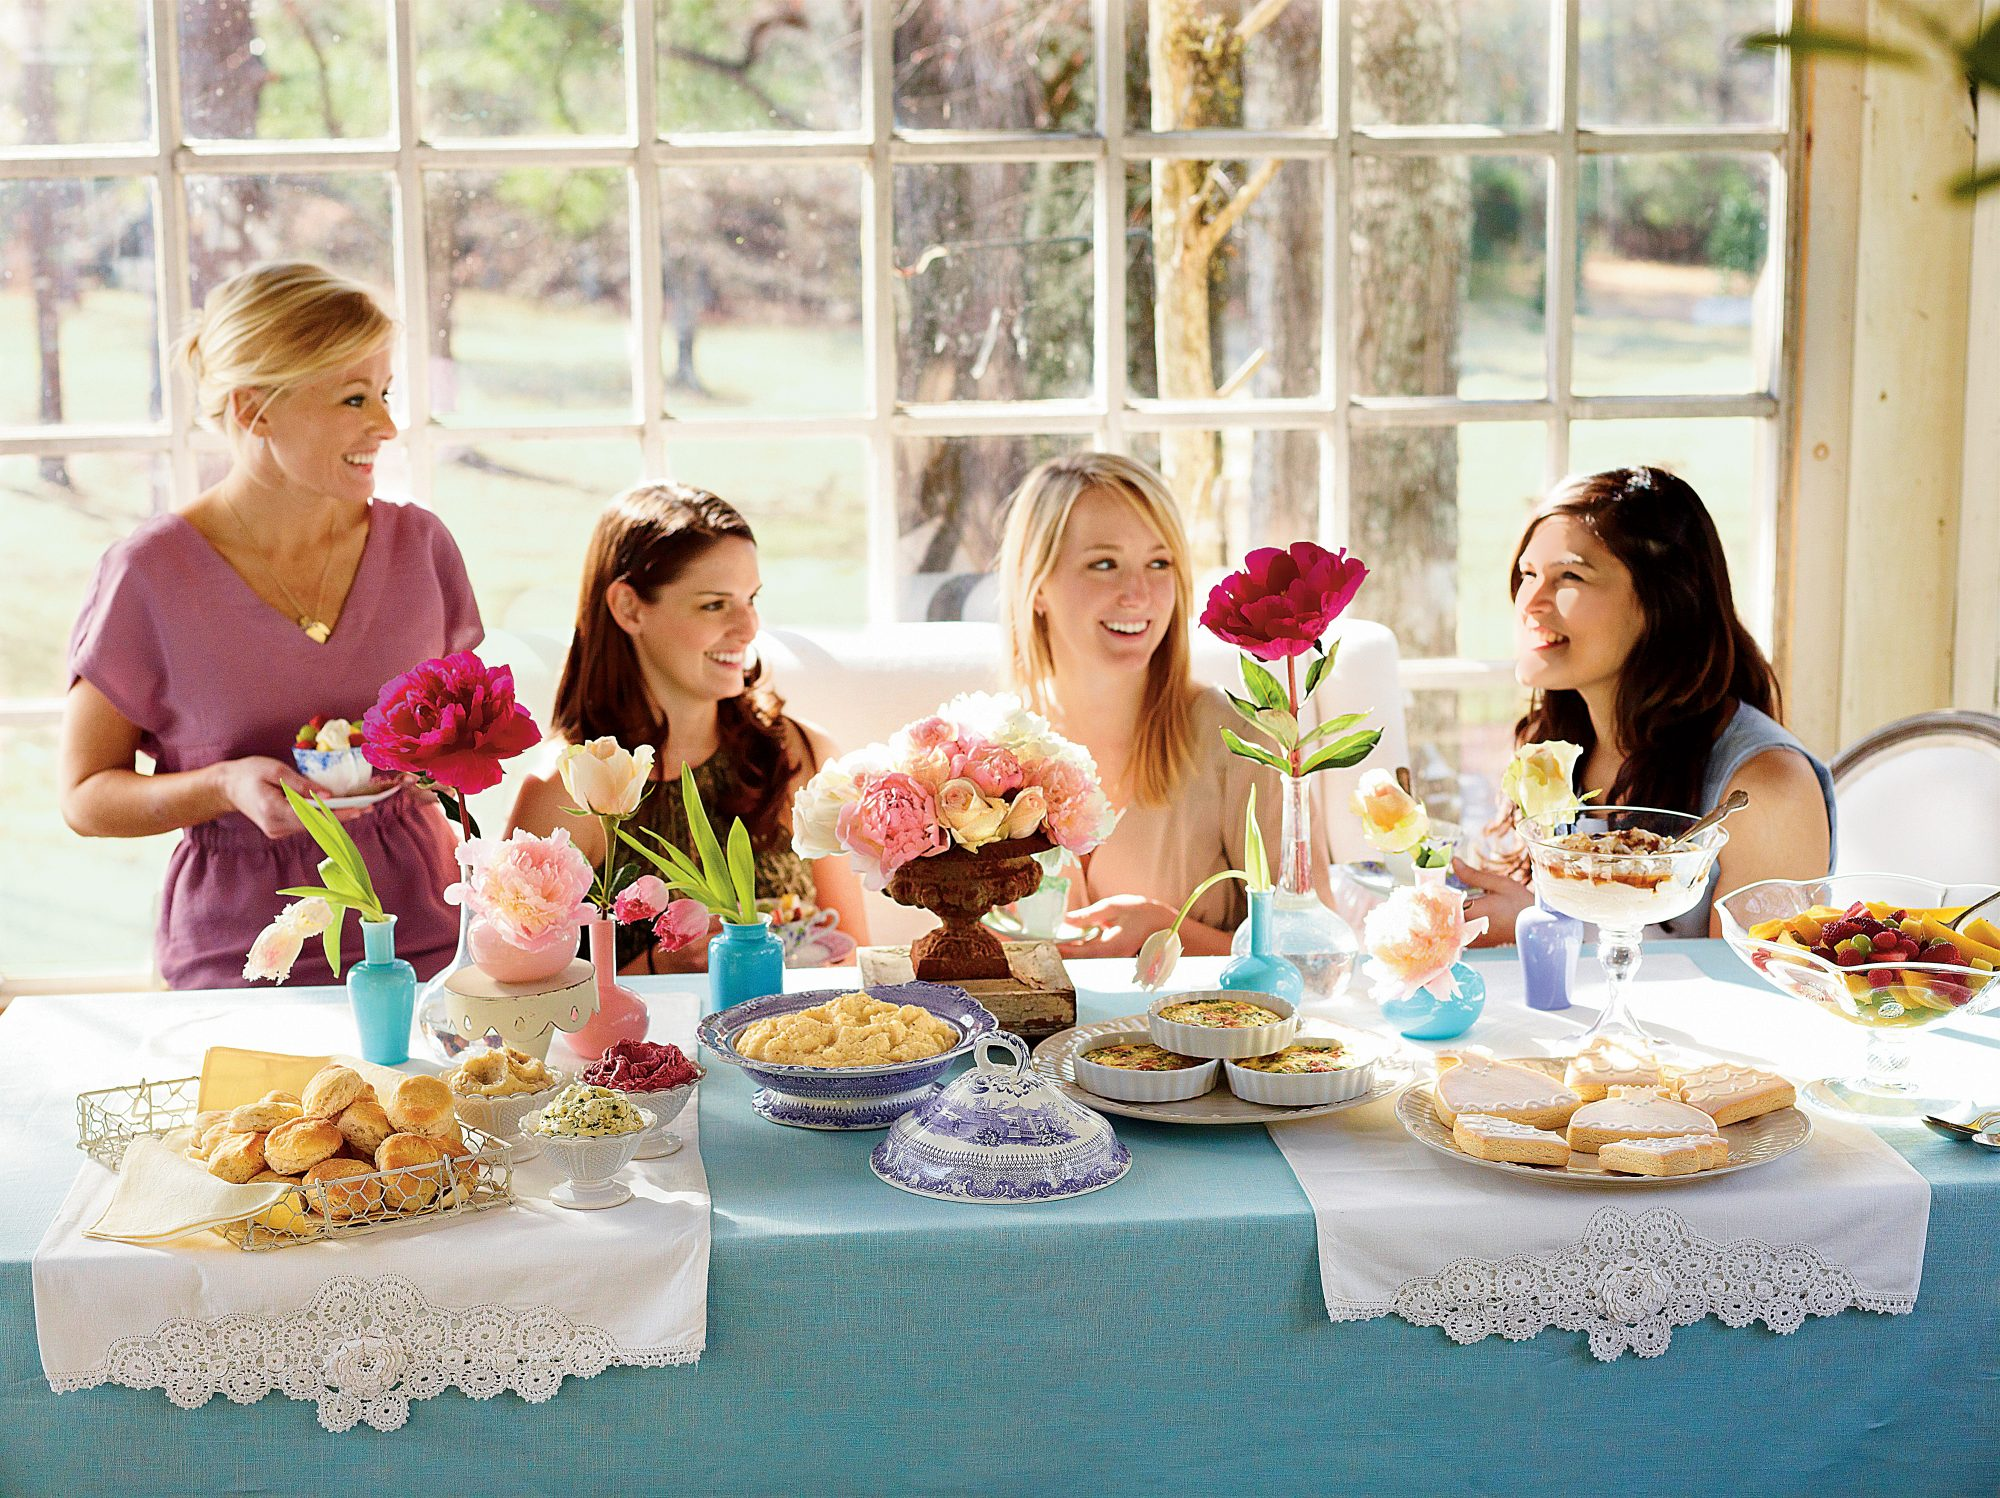 Women at a Brunch Bridal Shower